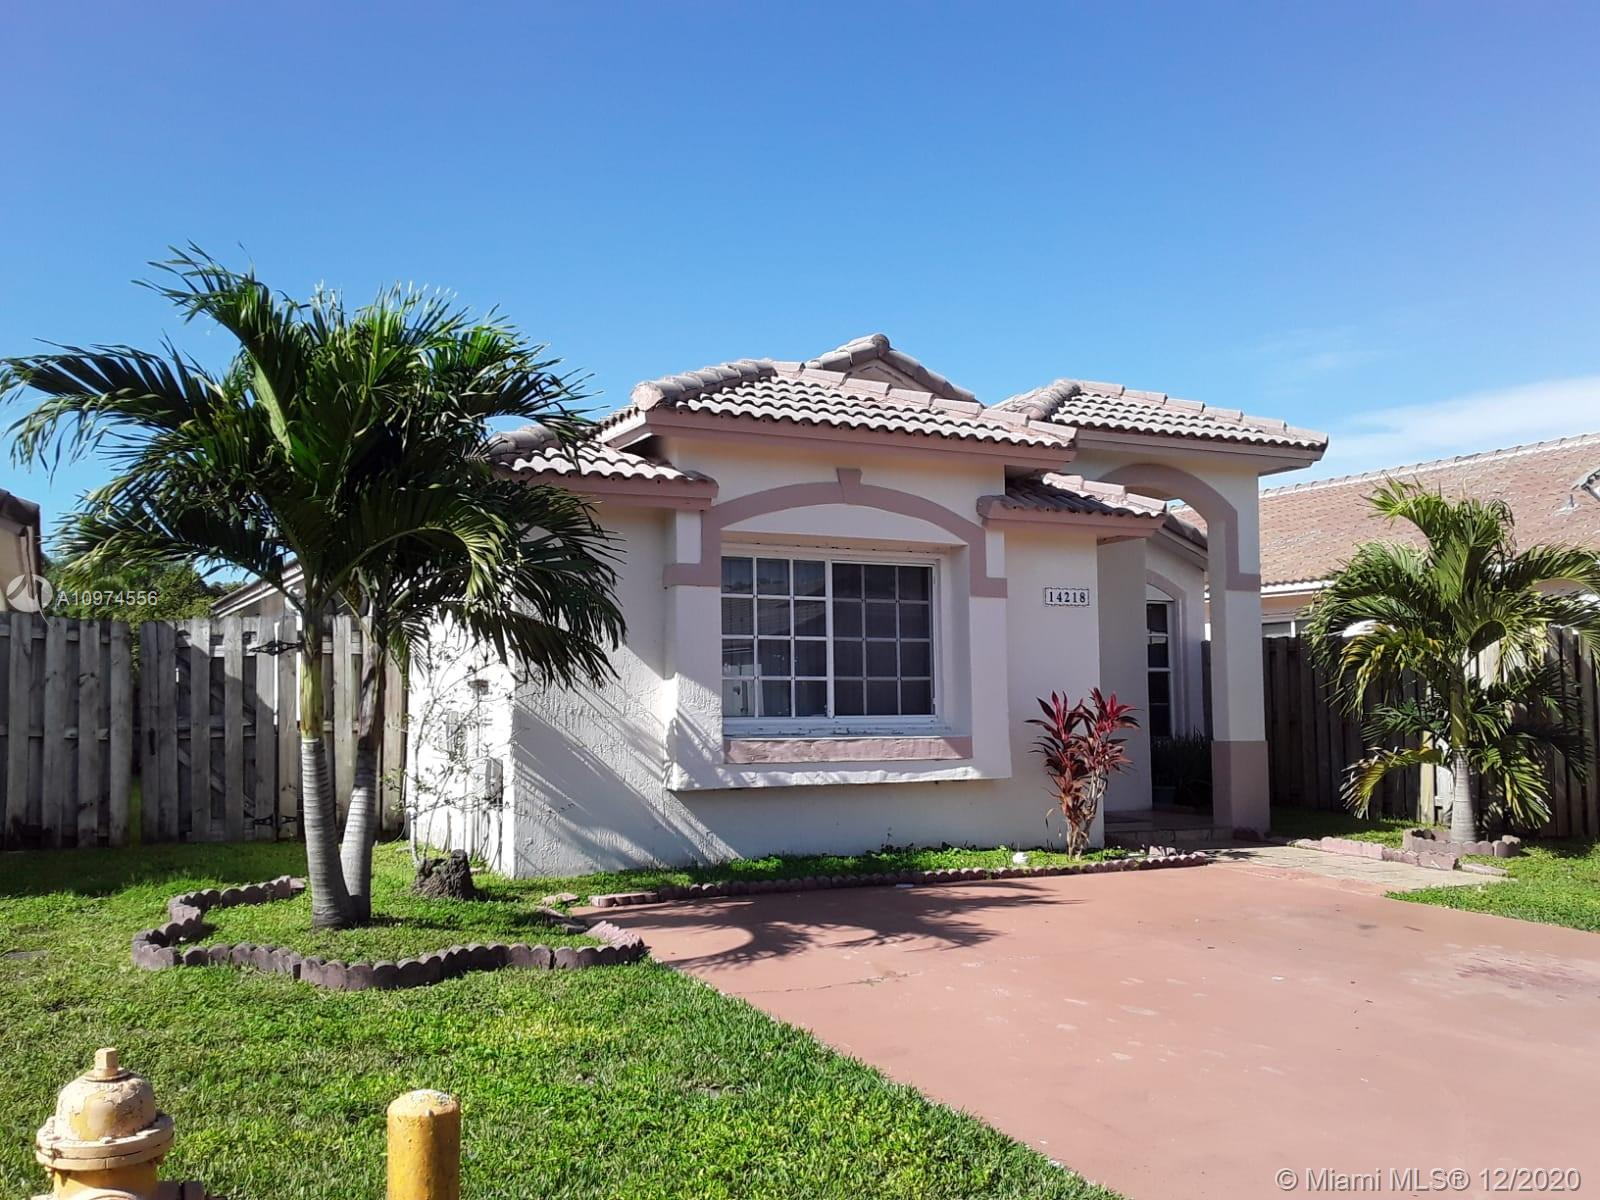 GREAT KENDALL LOCATION. LOVELY STARTING HOME. LOCATED IN THE COMMUNITY OF BRIGHTON MEADOW TRACE. LOW HOA $49 PER MONTH. COMMUNITY POOL AND ENTRY GATE.  3/BEDROOMS 2 BATHROOMS.  LARGE MASTER BEDROOM WITH WALKING CLOSET.  TILE THROUGOUT ENTIRE HOUSE.  GOOD SIZE KITCHEN WITH BREAKFAST AREA AND LARGE PANTRY. HURRICANE SHUTTERS ON THE OUTSIDE STORAGE.  VERY NICE COVERED TERRACE.  HOUSE IN ITS ORIGINAL CONDITION.  THE WASHER & DRYER ARE NEW, AS WELL AS THE MICROWAVE. THE  COMPLETE UNIT OF THE AIR CONDITIONER HAS BEEN REPLACED RECENTLY.   HOA APPROVAL REQUIRED.